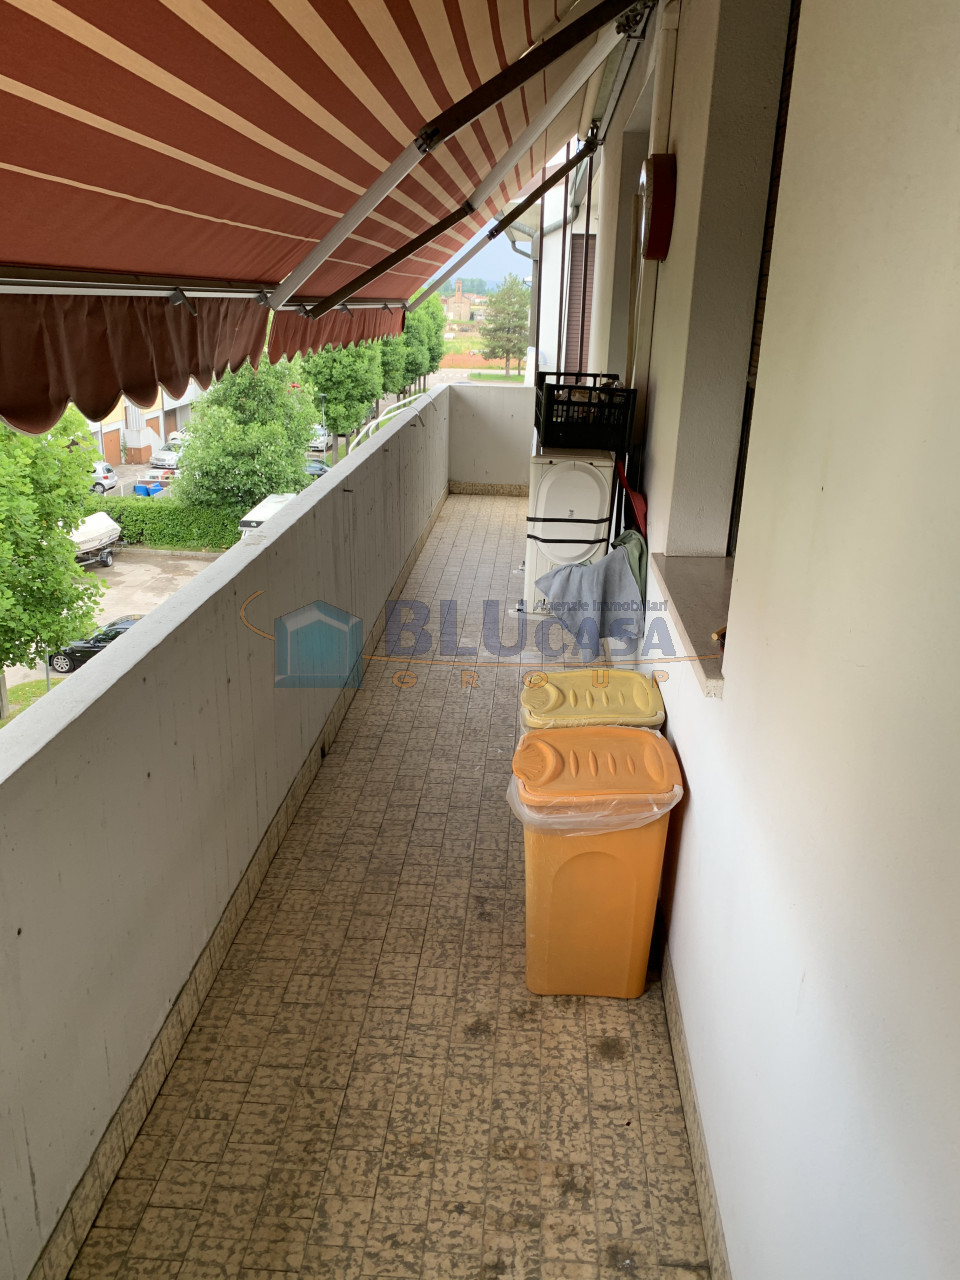 J02 Appartamento 3 camere a Mandriola https://images.gestionaleimmobiliare.it/foto/annunci/210609/2623100/1280x1280/017__anyconv_com__img_3588.jpg